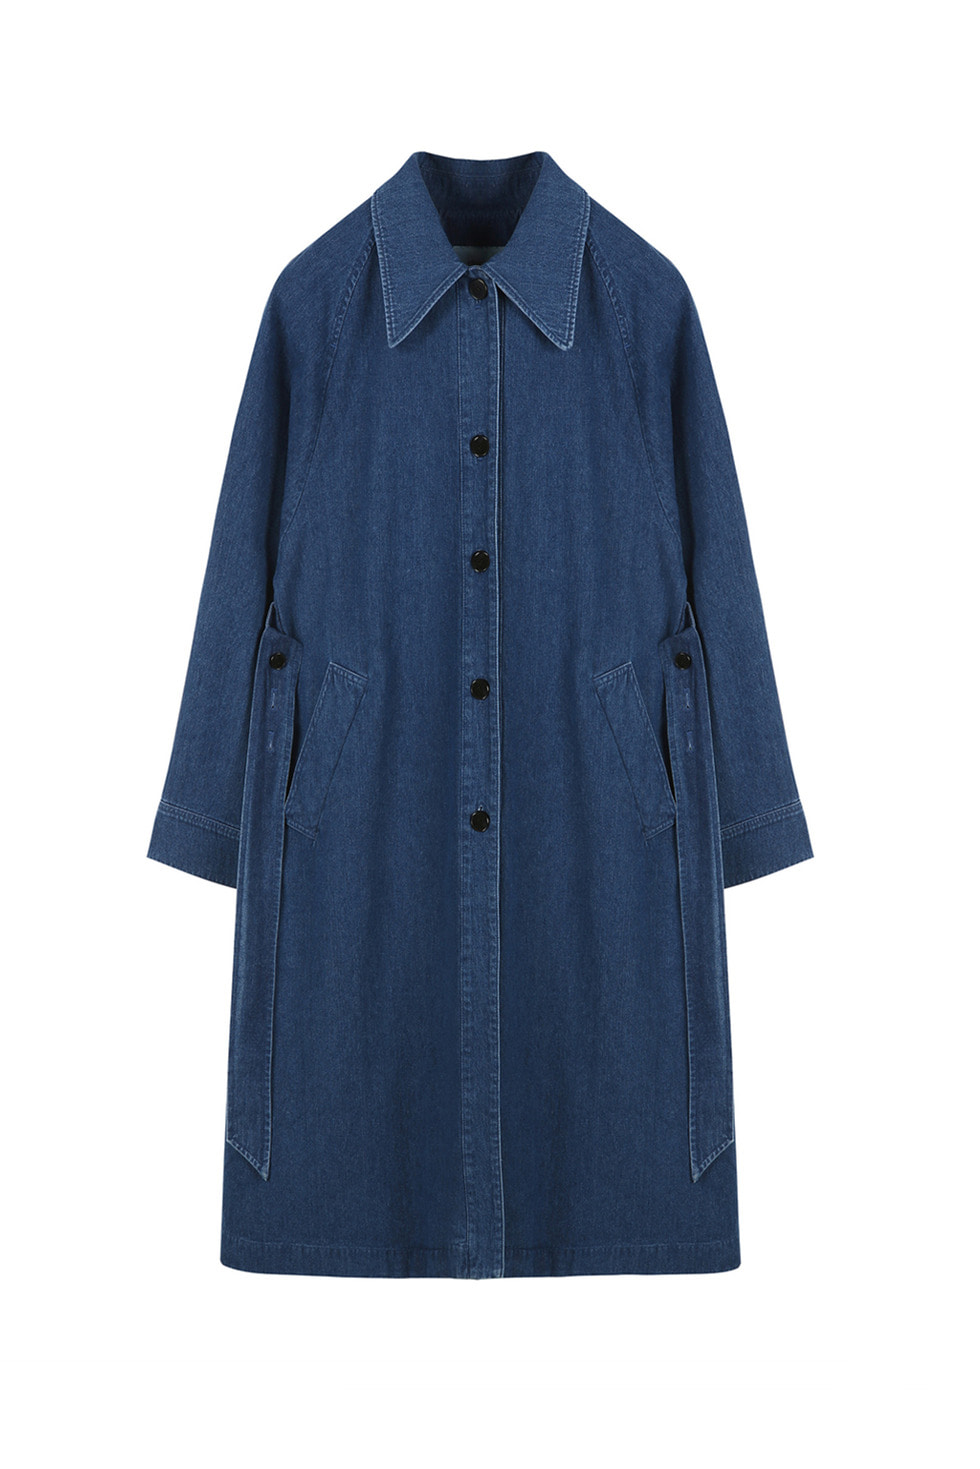 BIG COLLAR TRENCH - BLUE